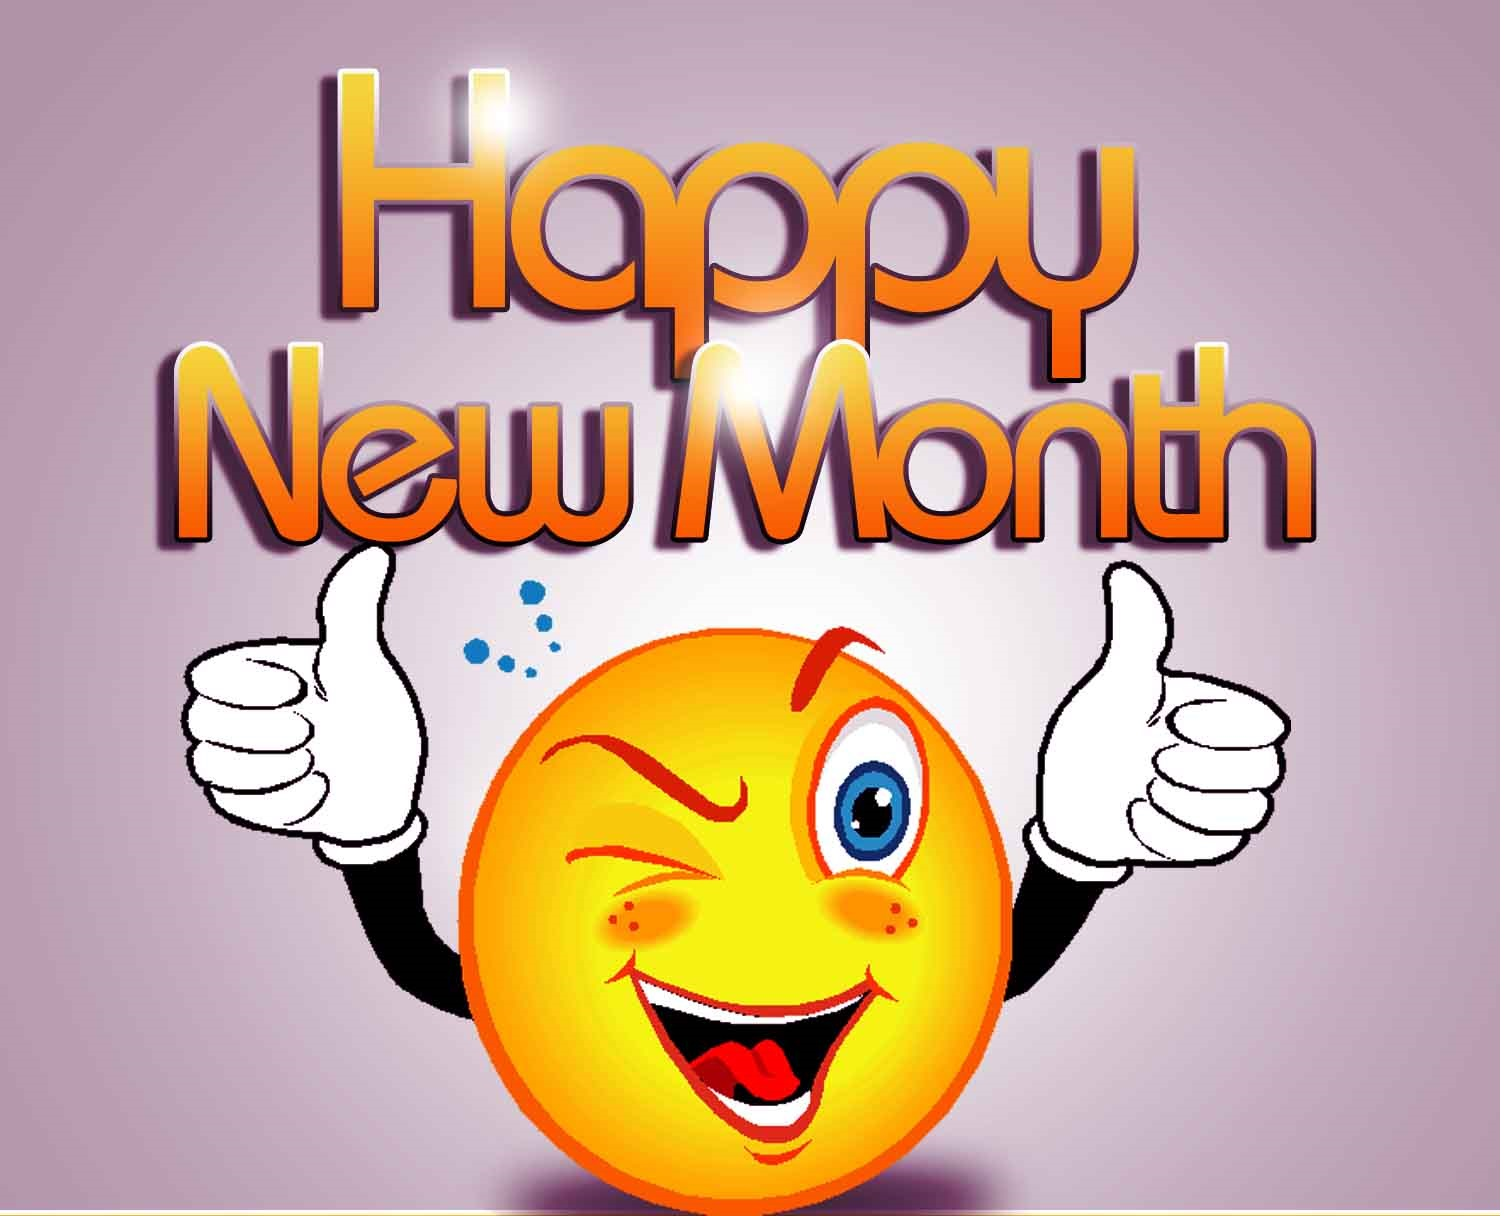 Quotes about a new month quotesgram